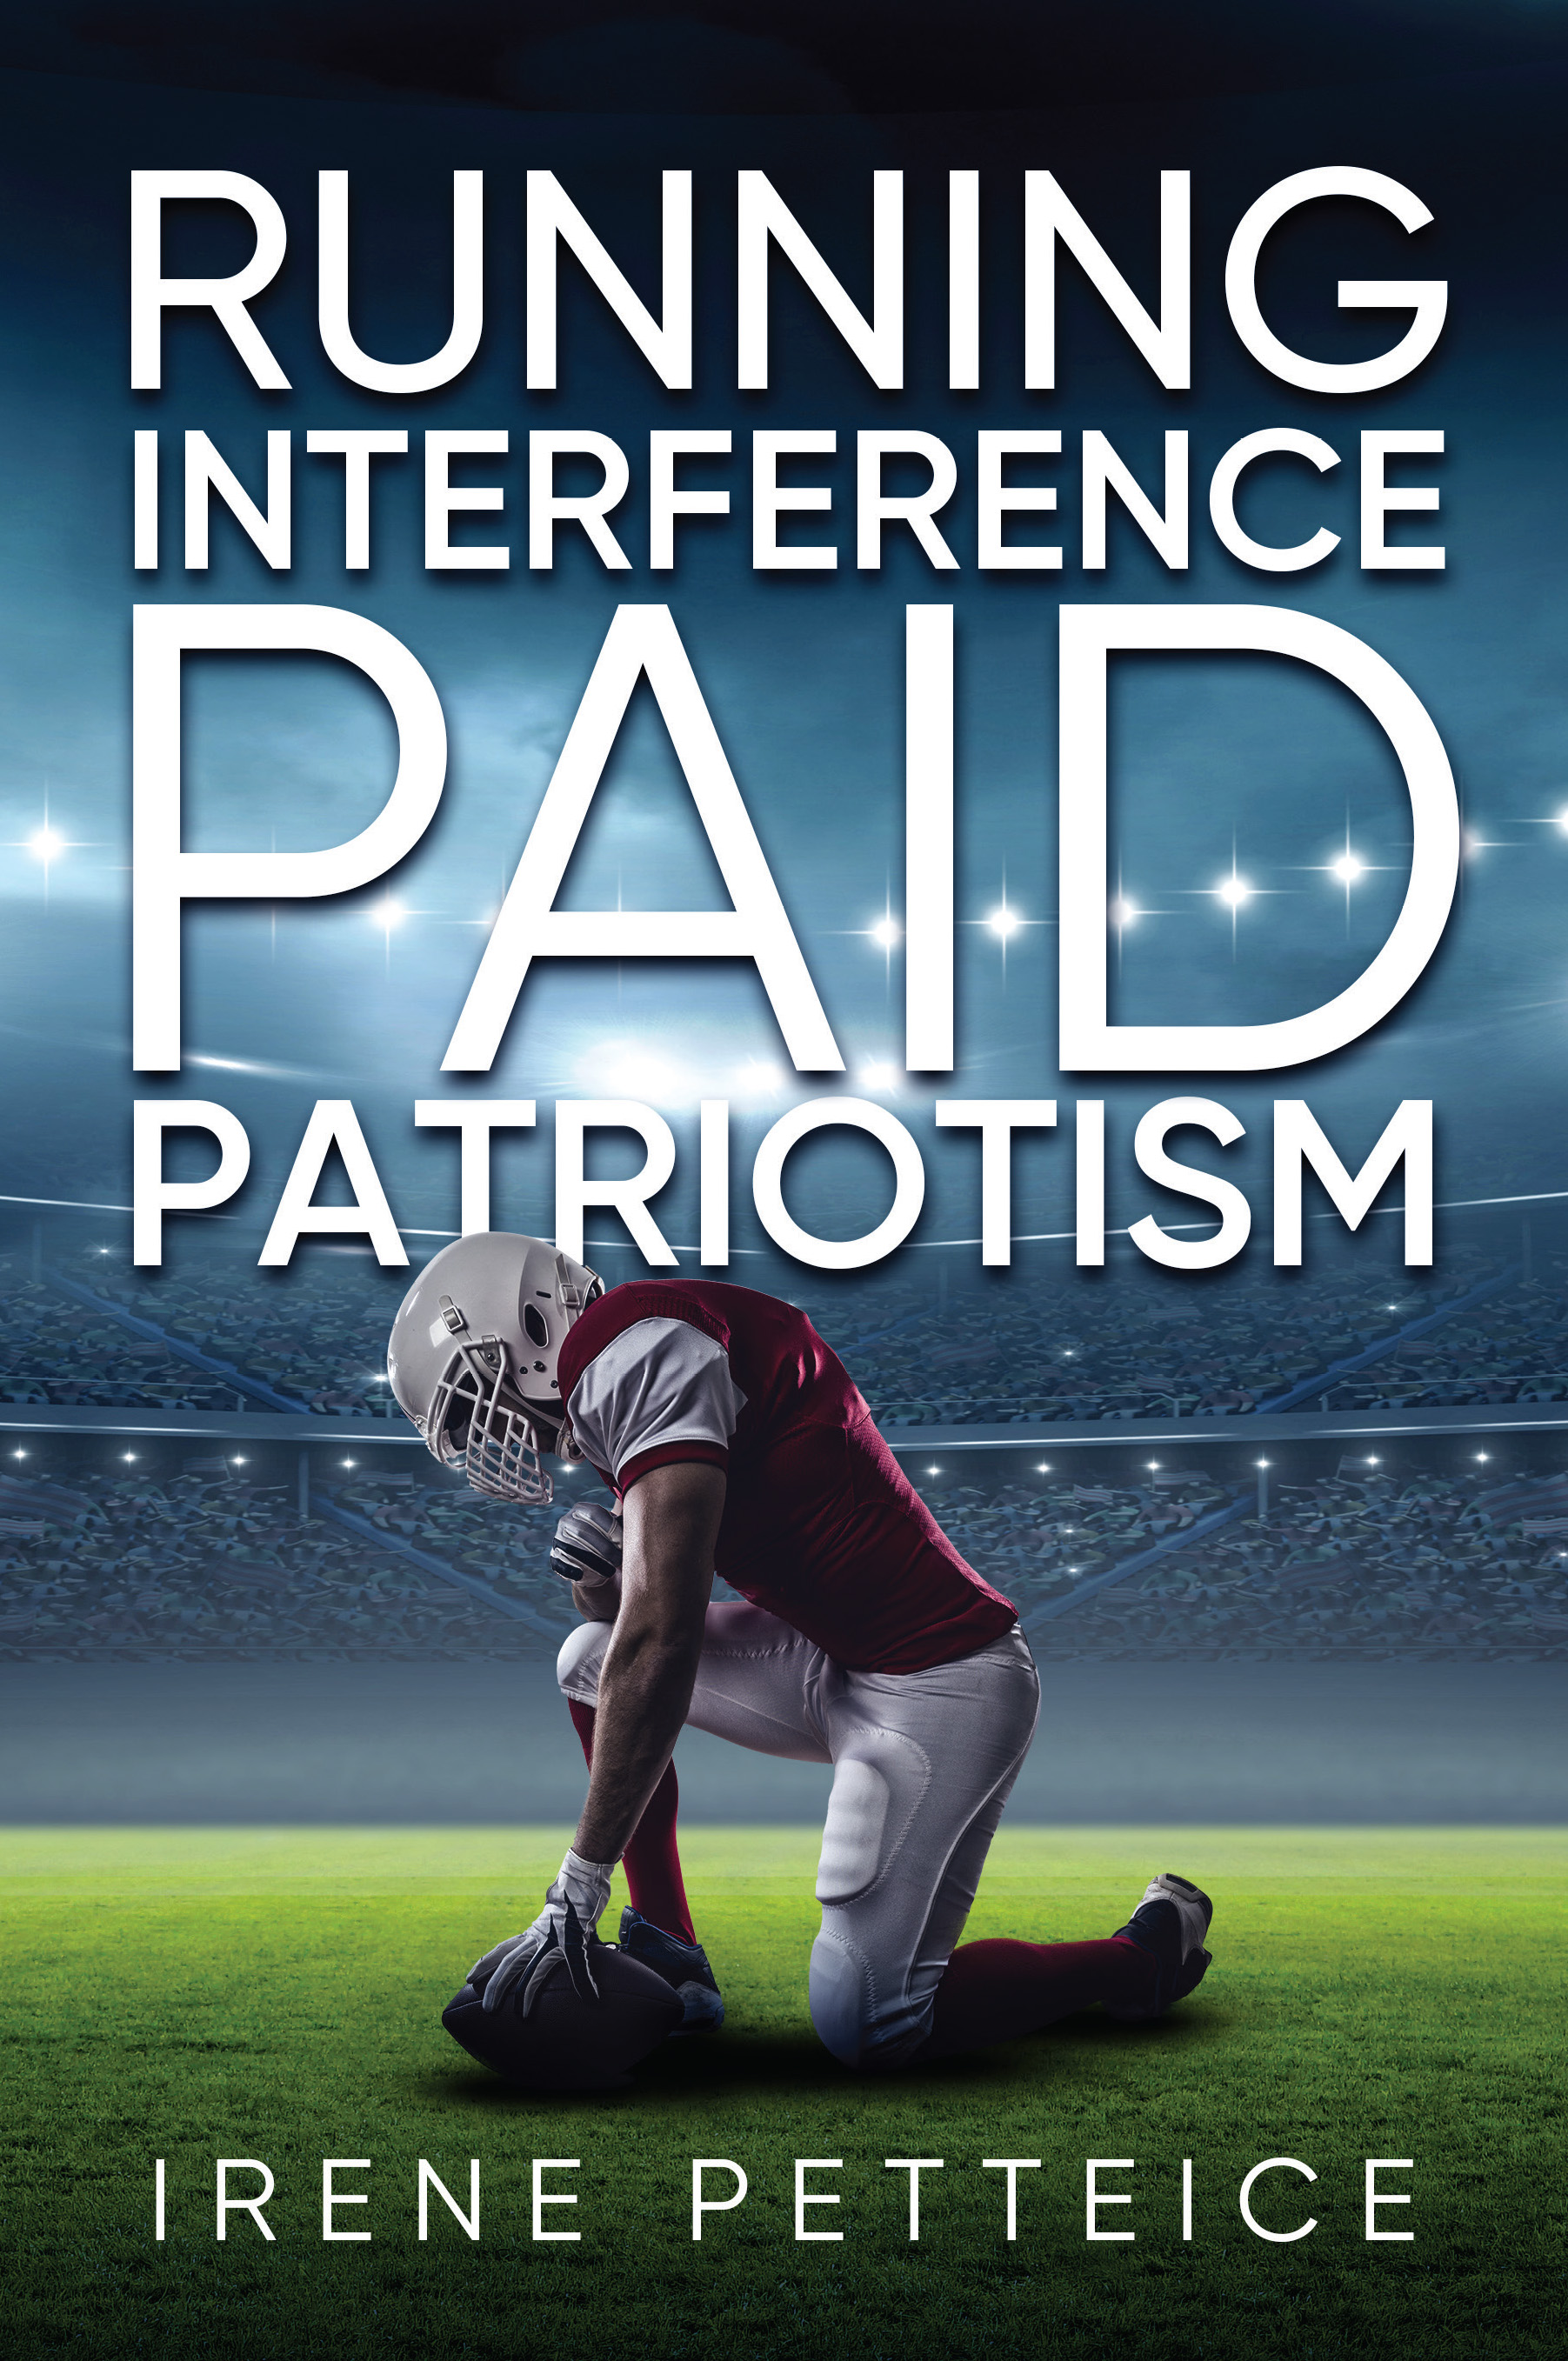 Running Interference: Paid Patriotism by Author Irene Petteice